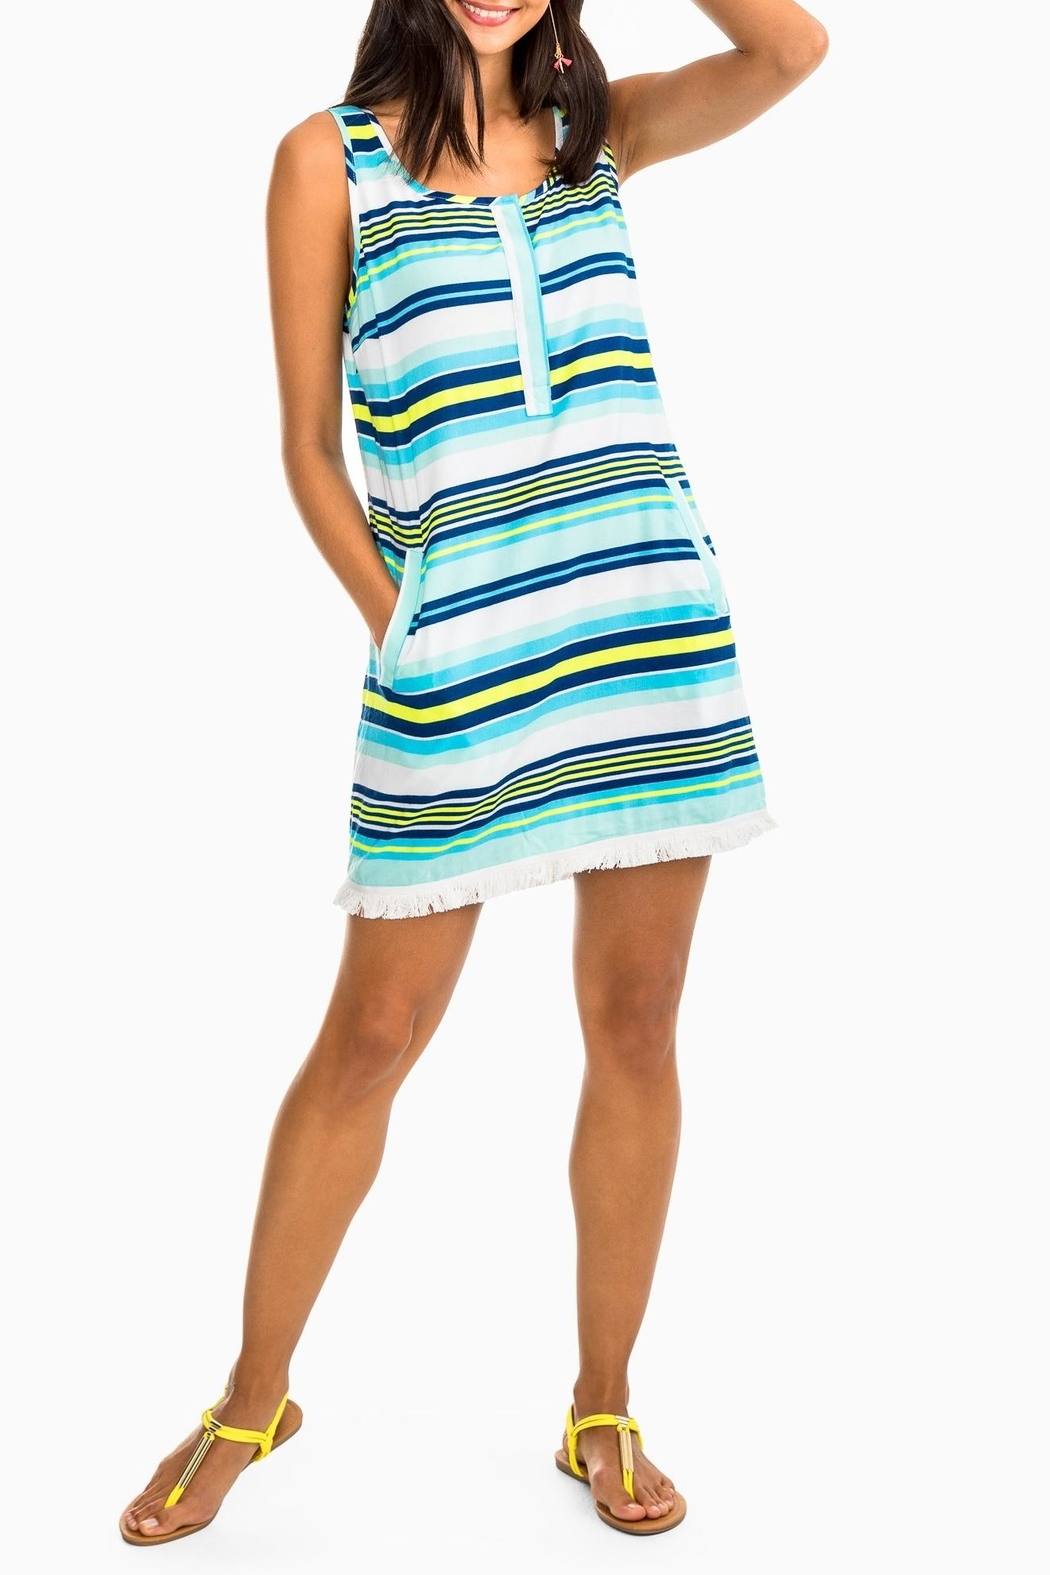 Southern Tide Corrine Stripe Dress - Main Image